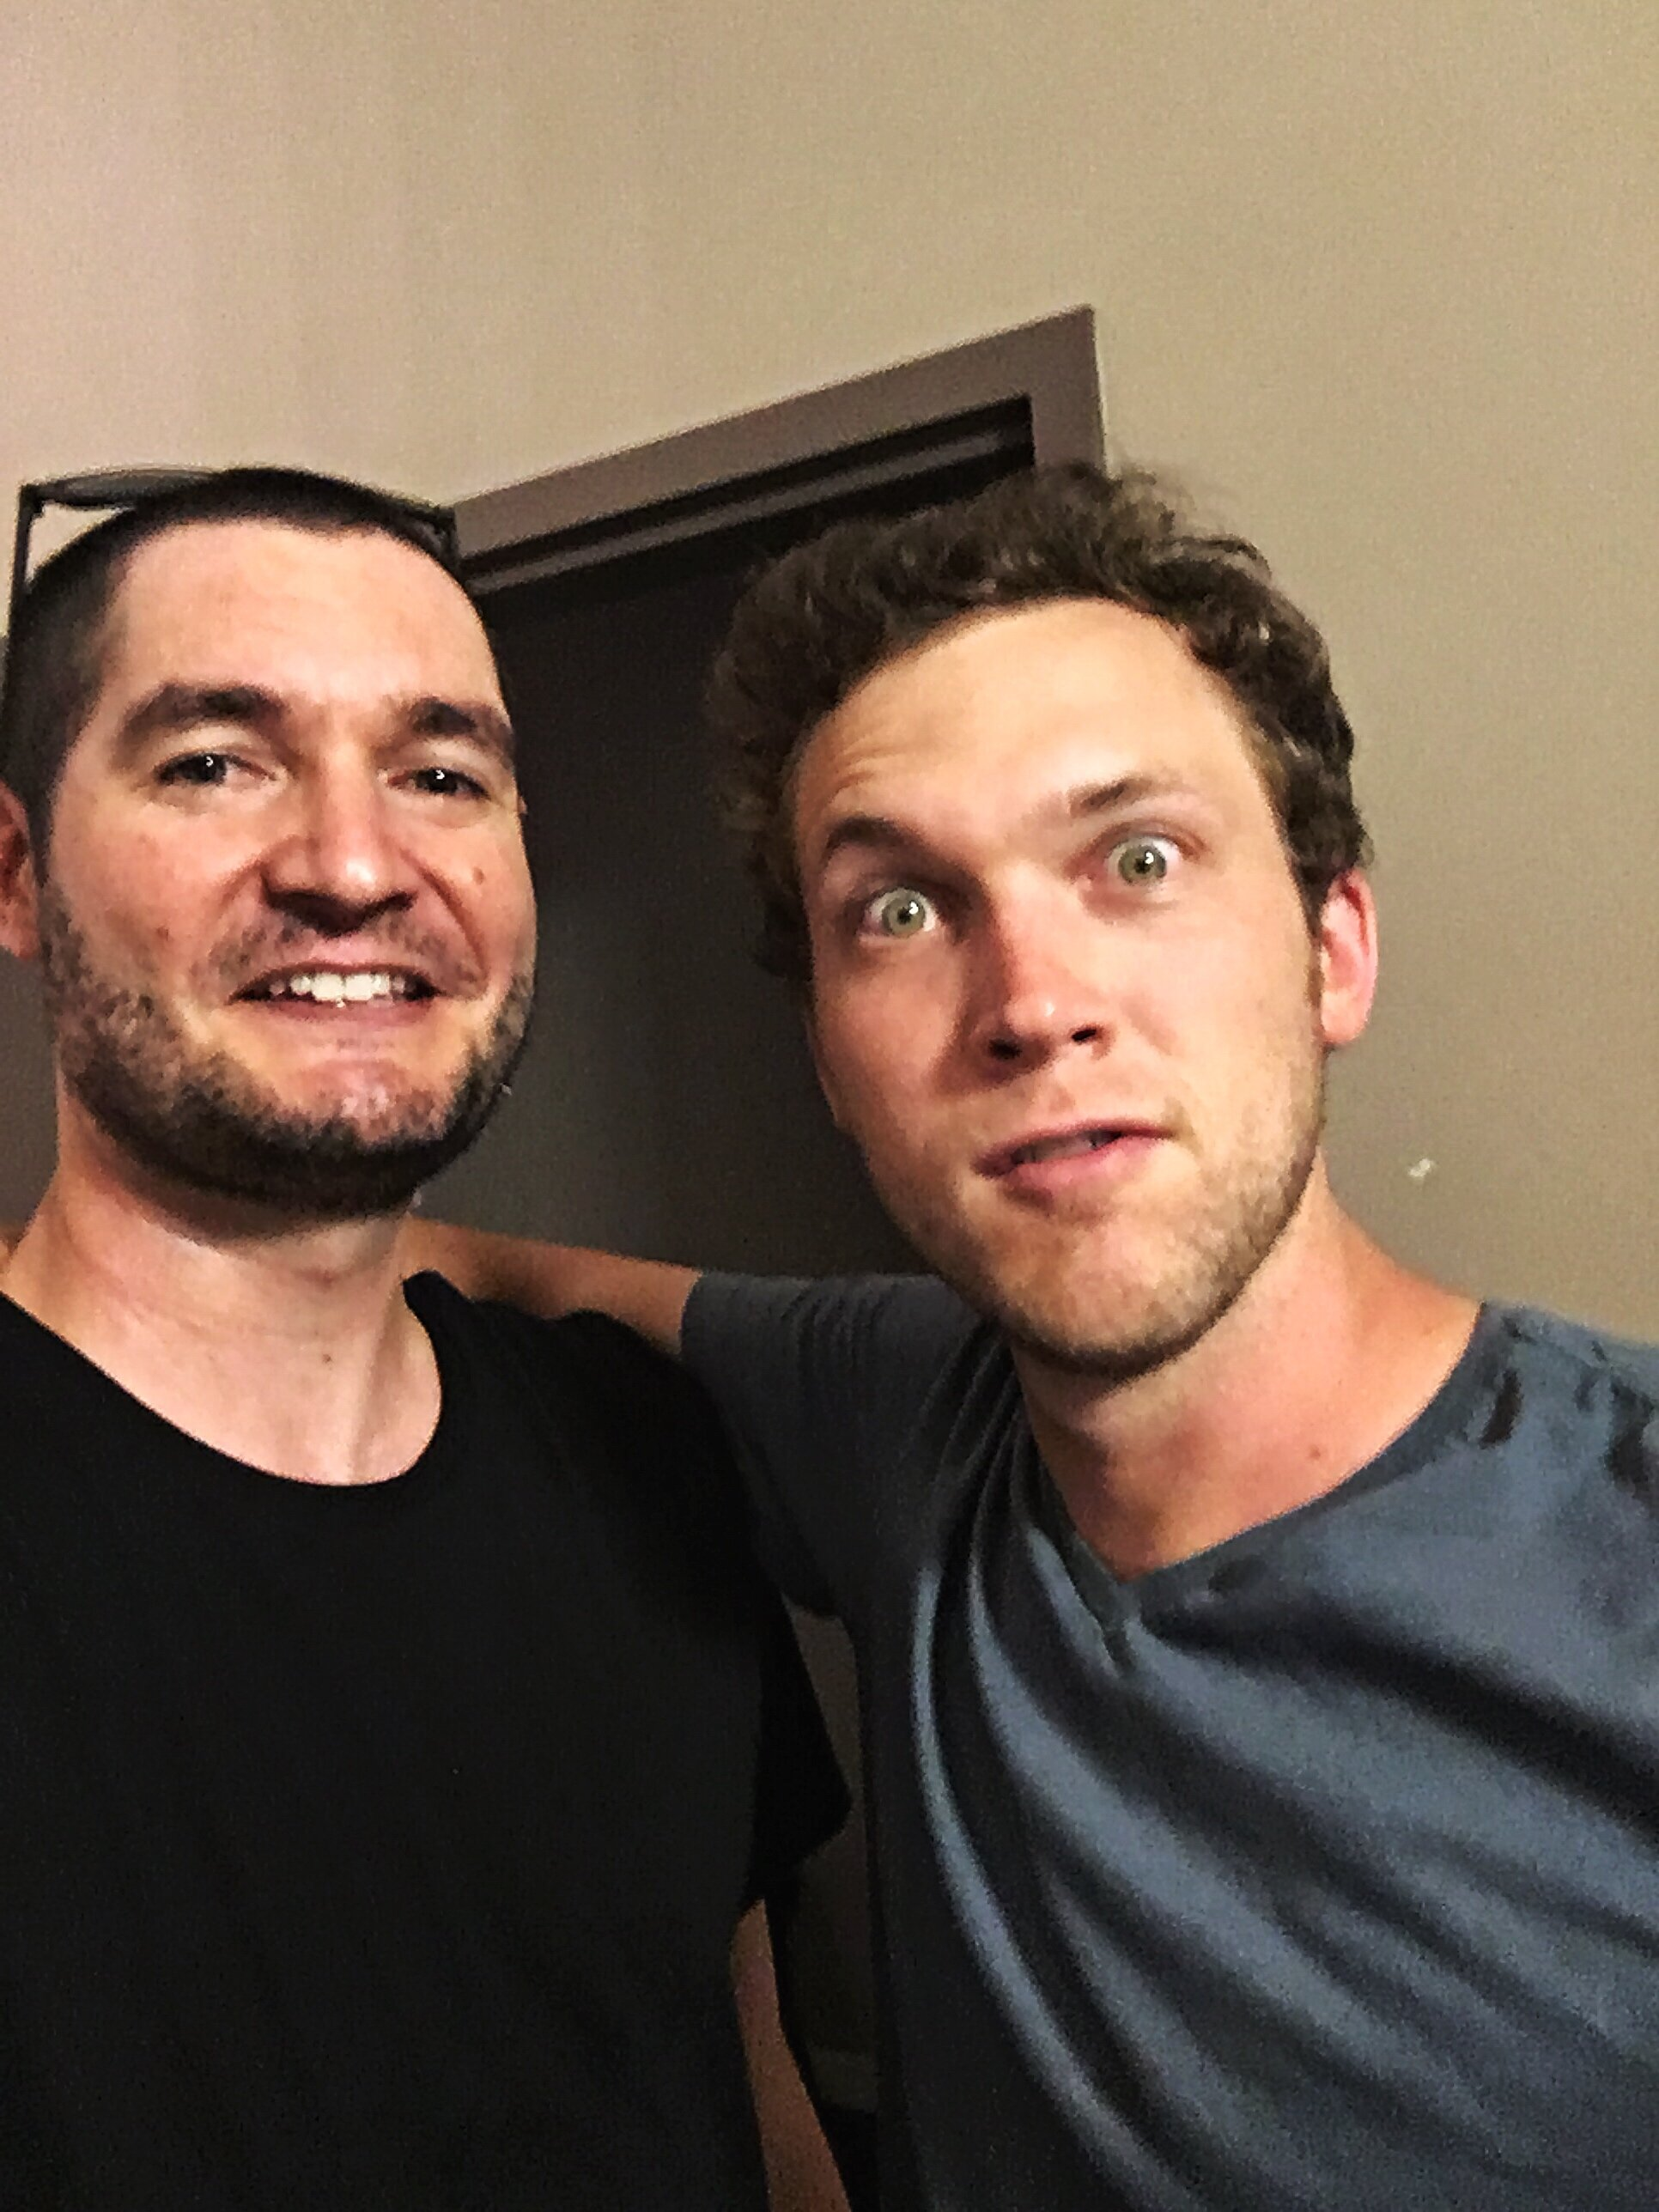 David & Phillip Phillips backstage at Wilmington's Greenfield Lake Amphitheater